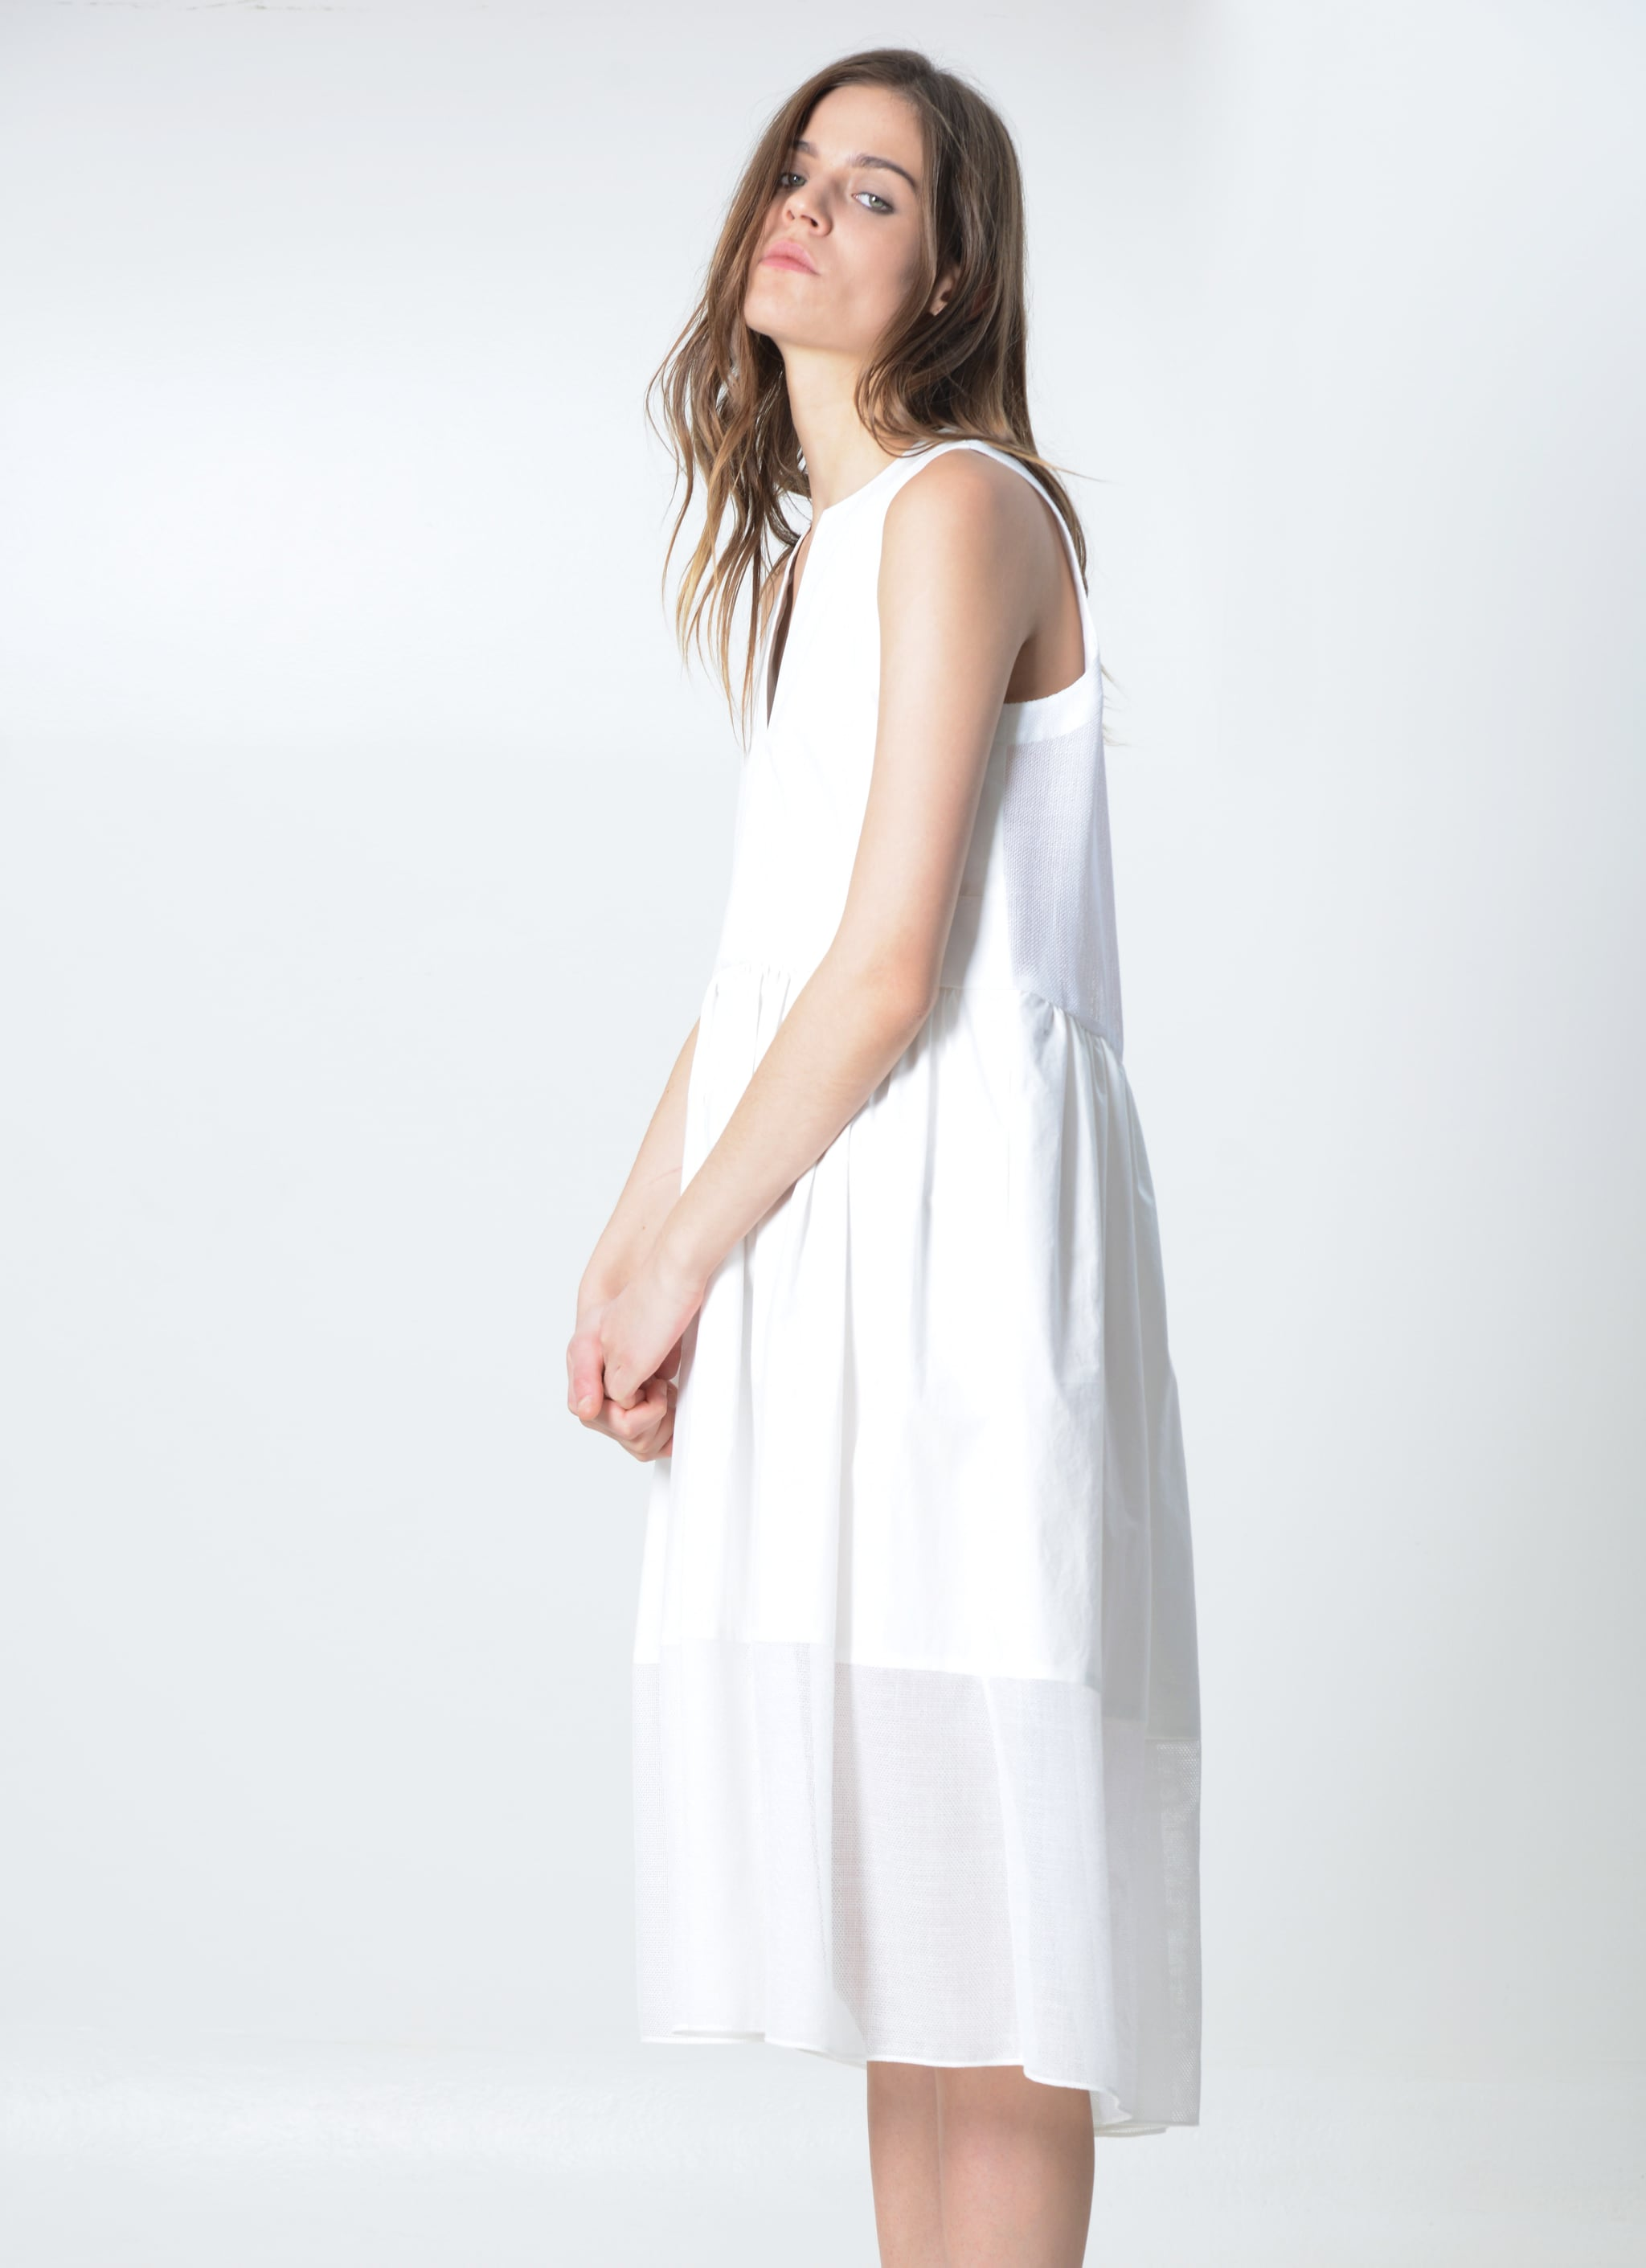 Tibi Summer 2014 Lookbook